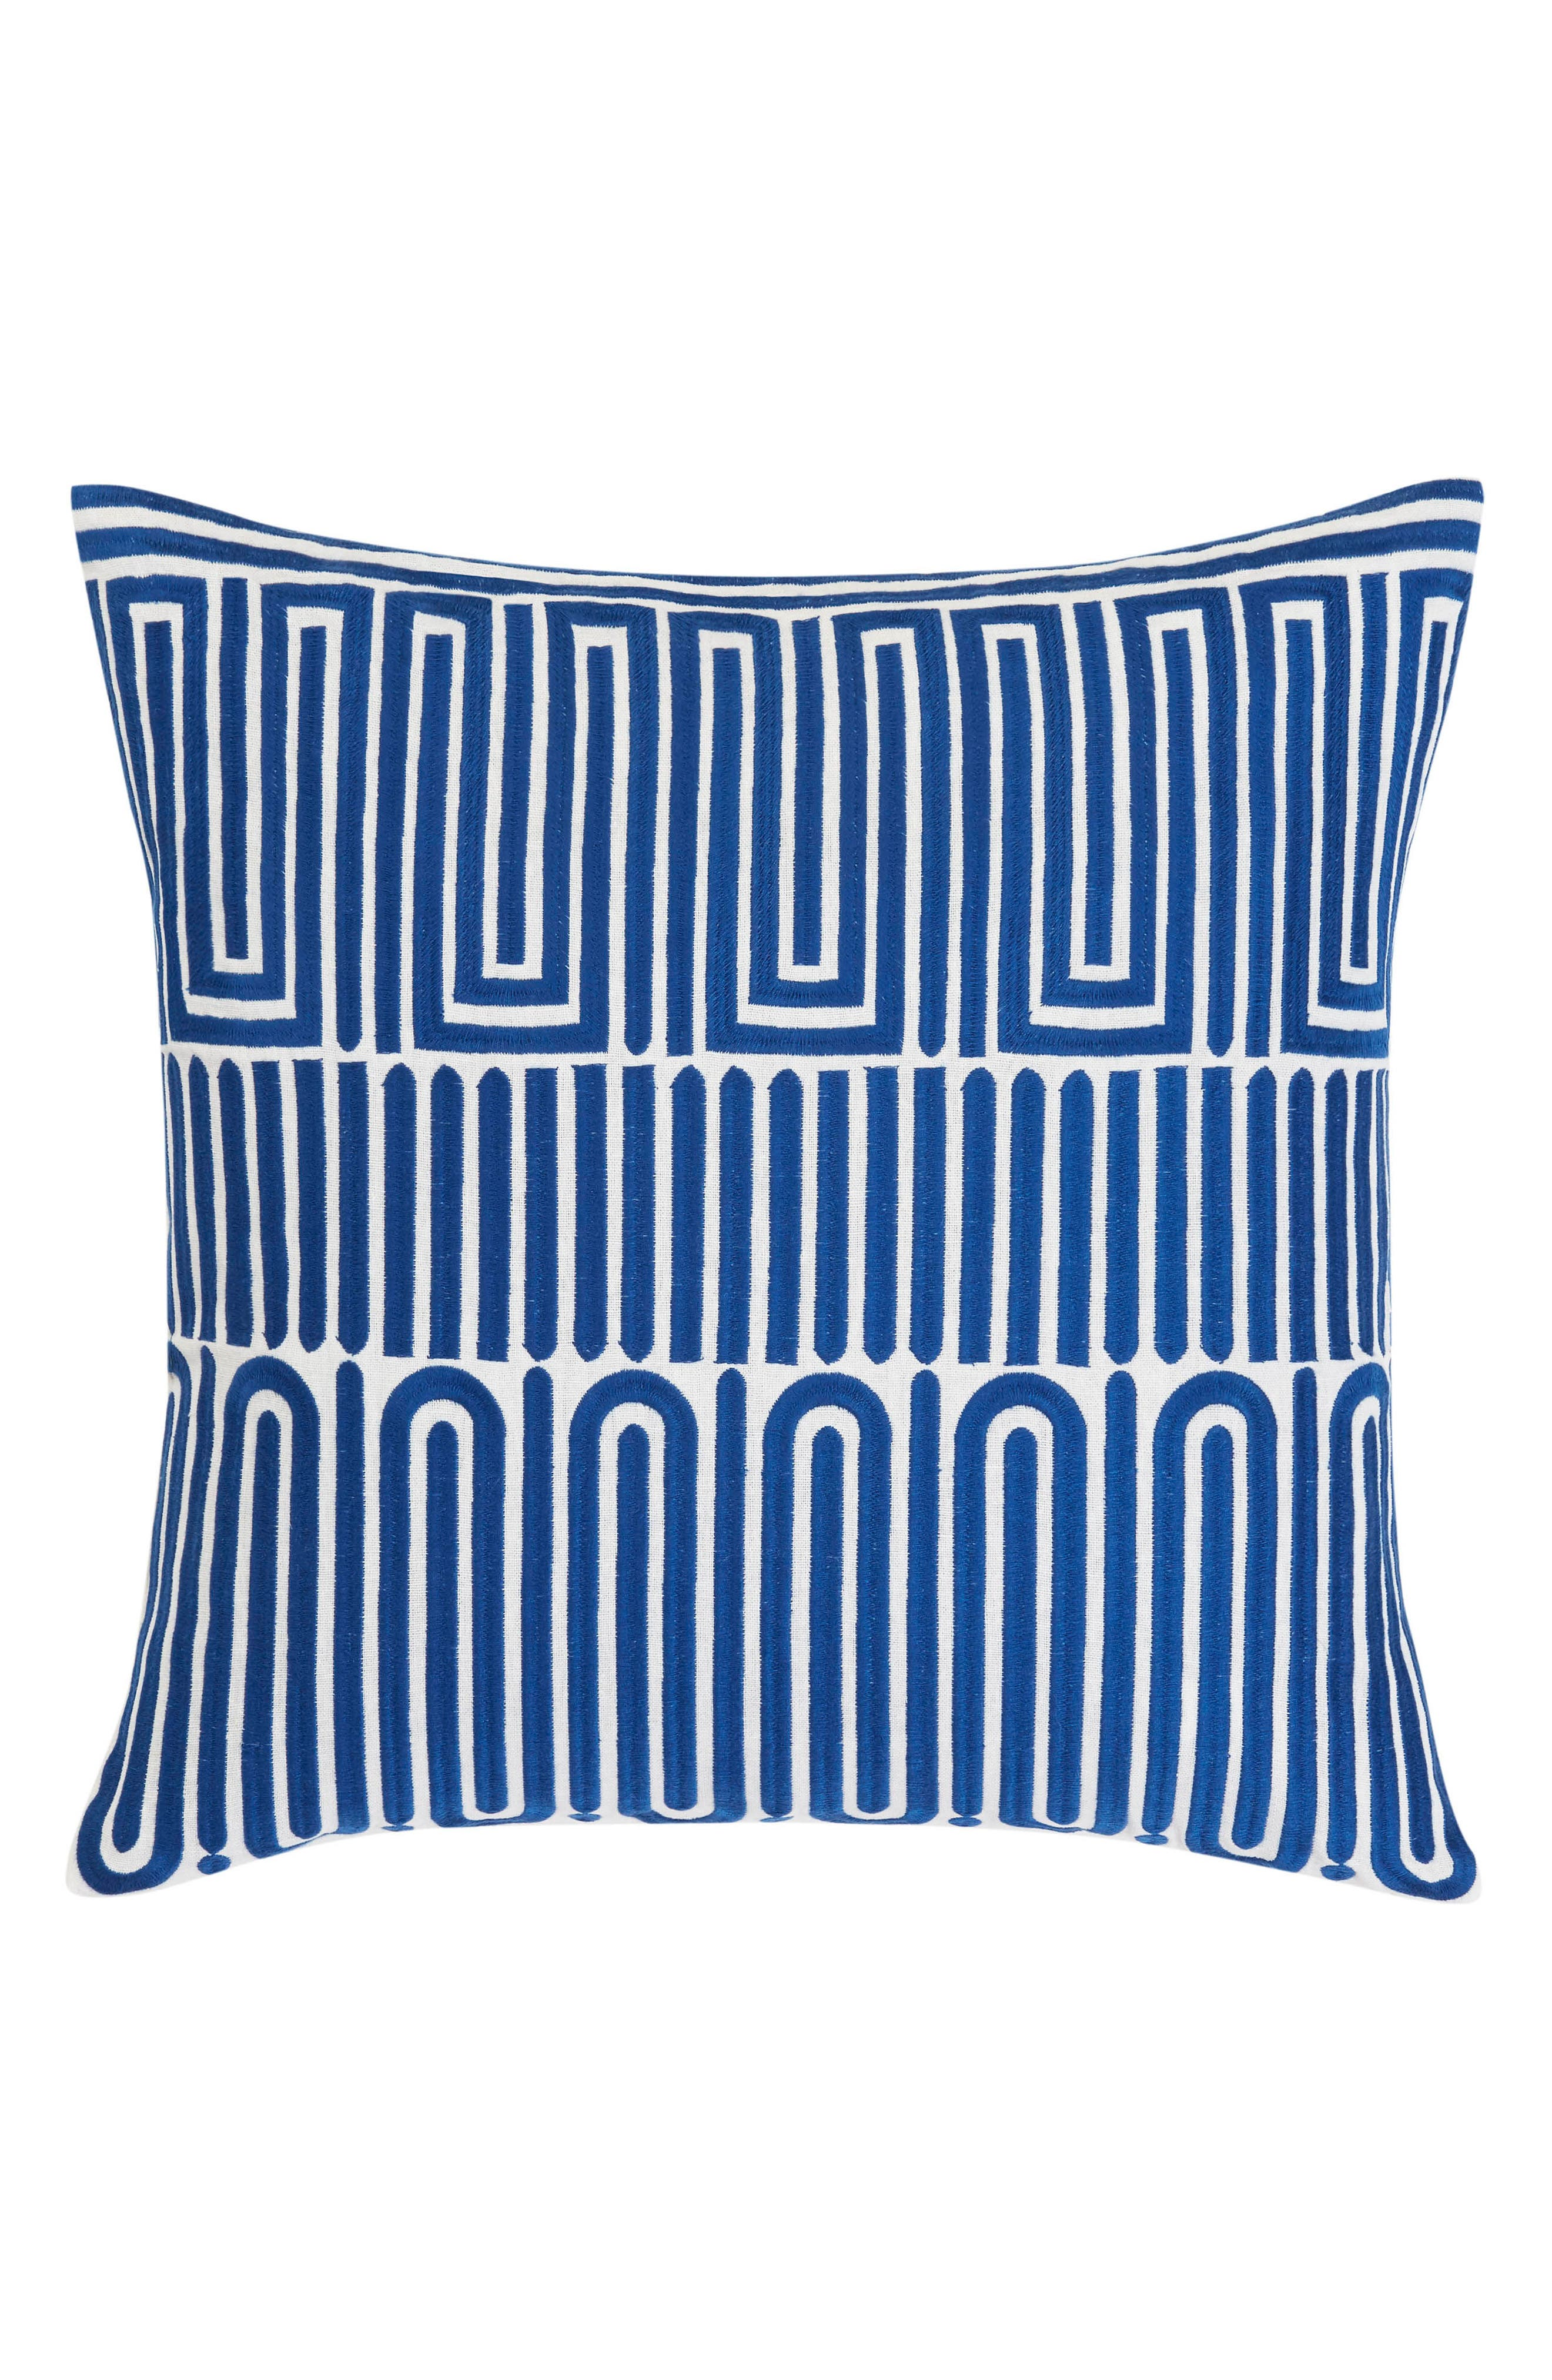 Racket Club Accent Pillow,                         Main,                         color, DARK BLUE